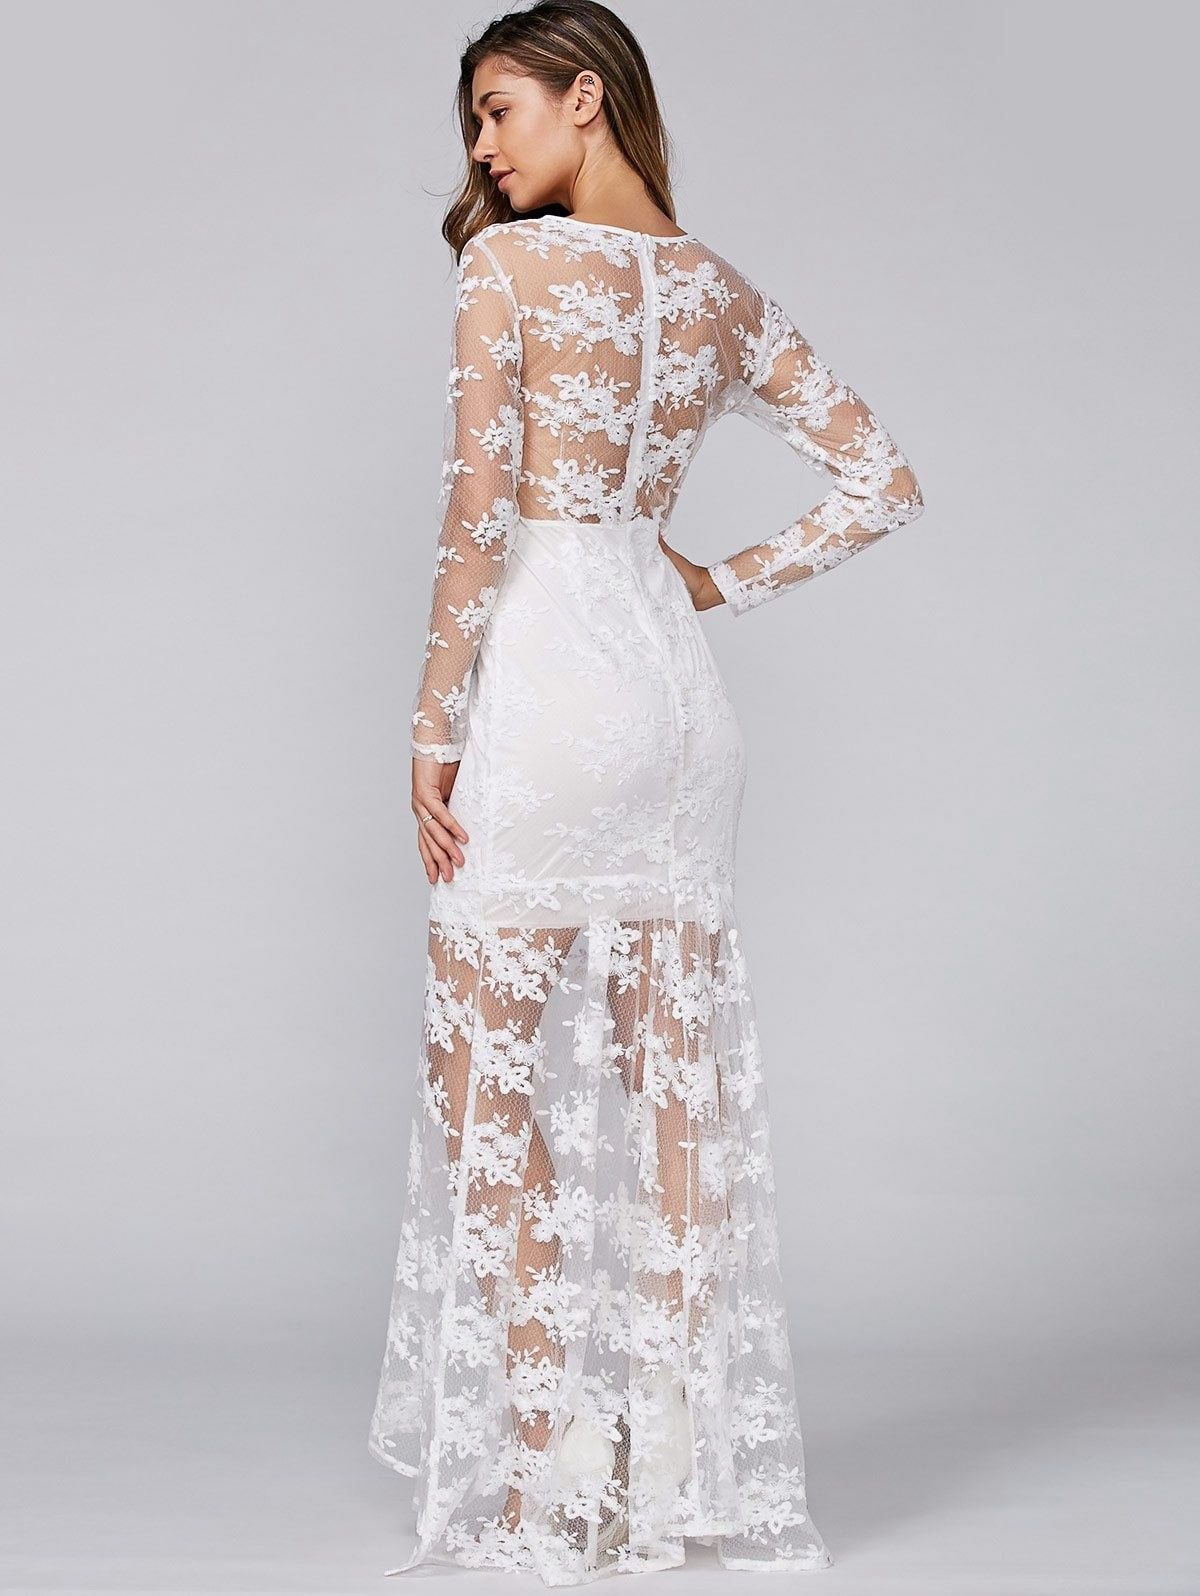 See Through Lace Slimming Maxi Dress Ad Spon Slimming Lace Dress Maxi Full Sleeve Lace Dress Lace Panel Dress Lace Pink Dress